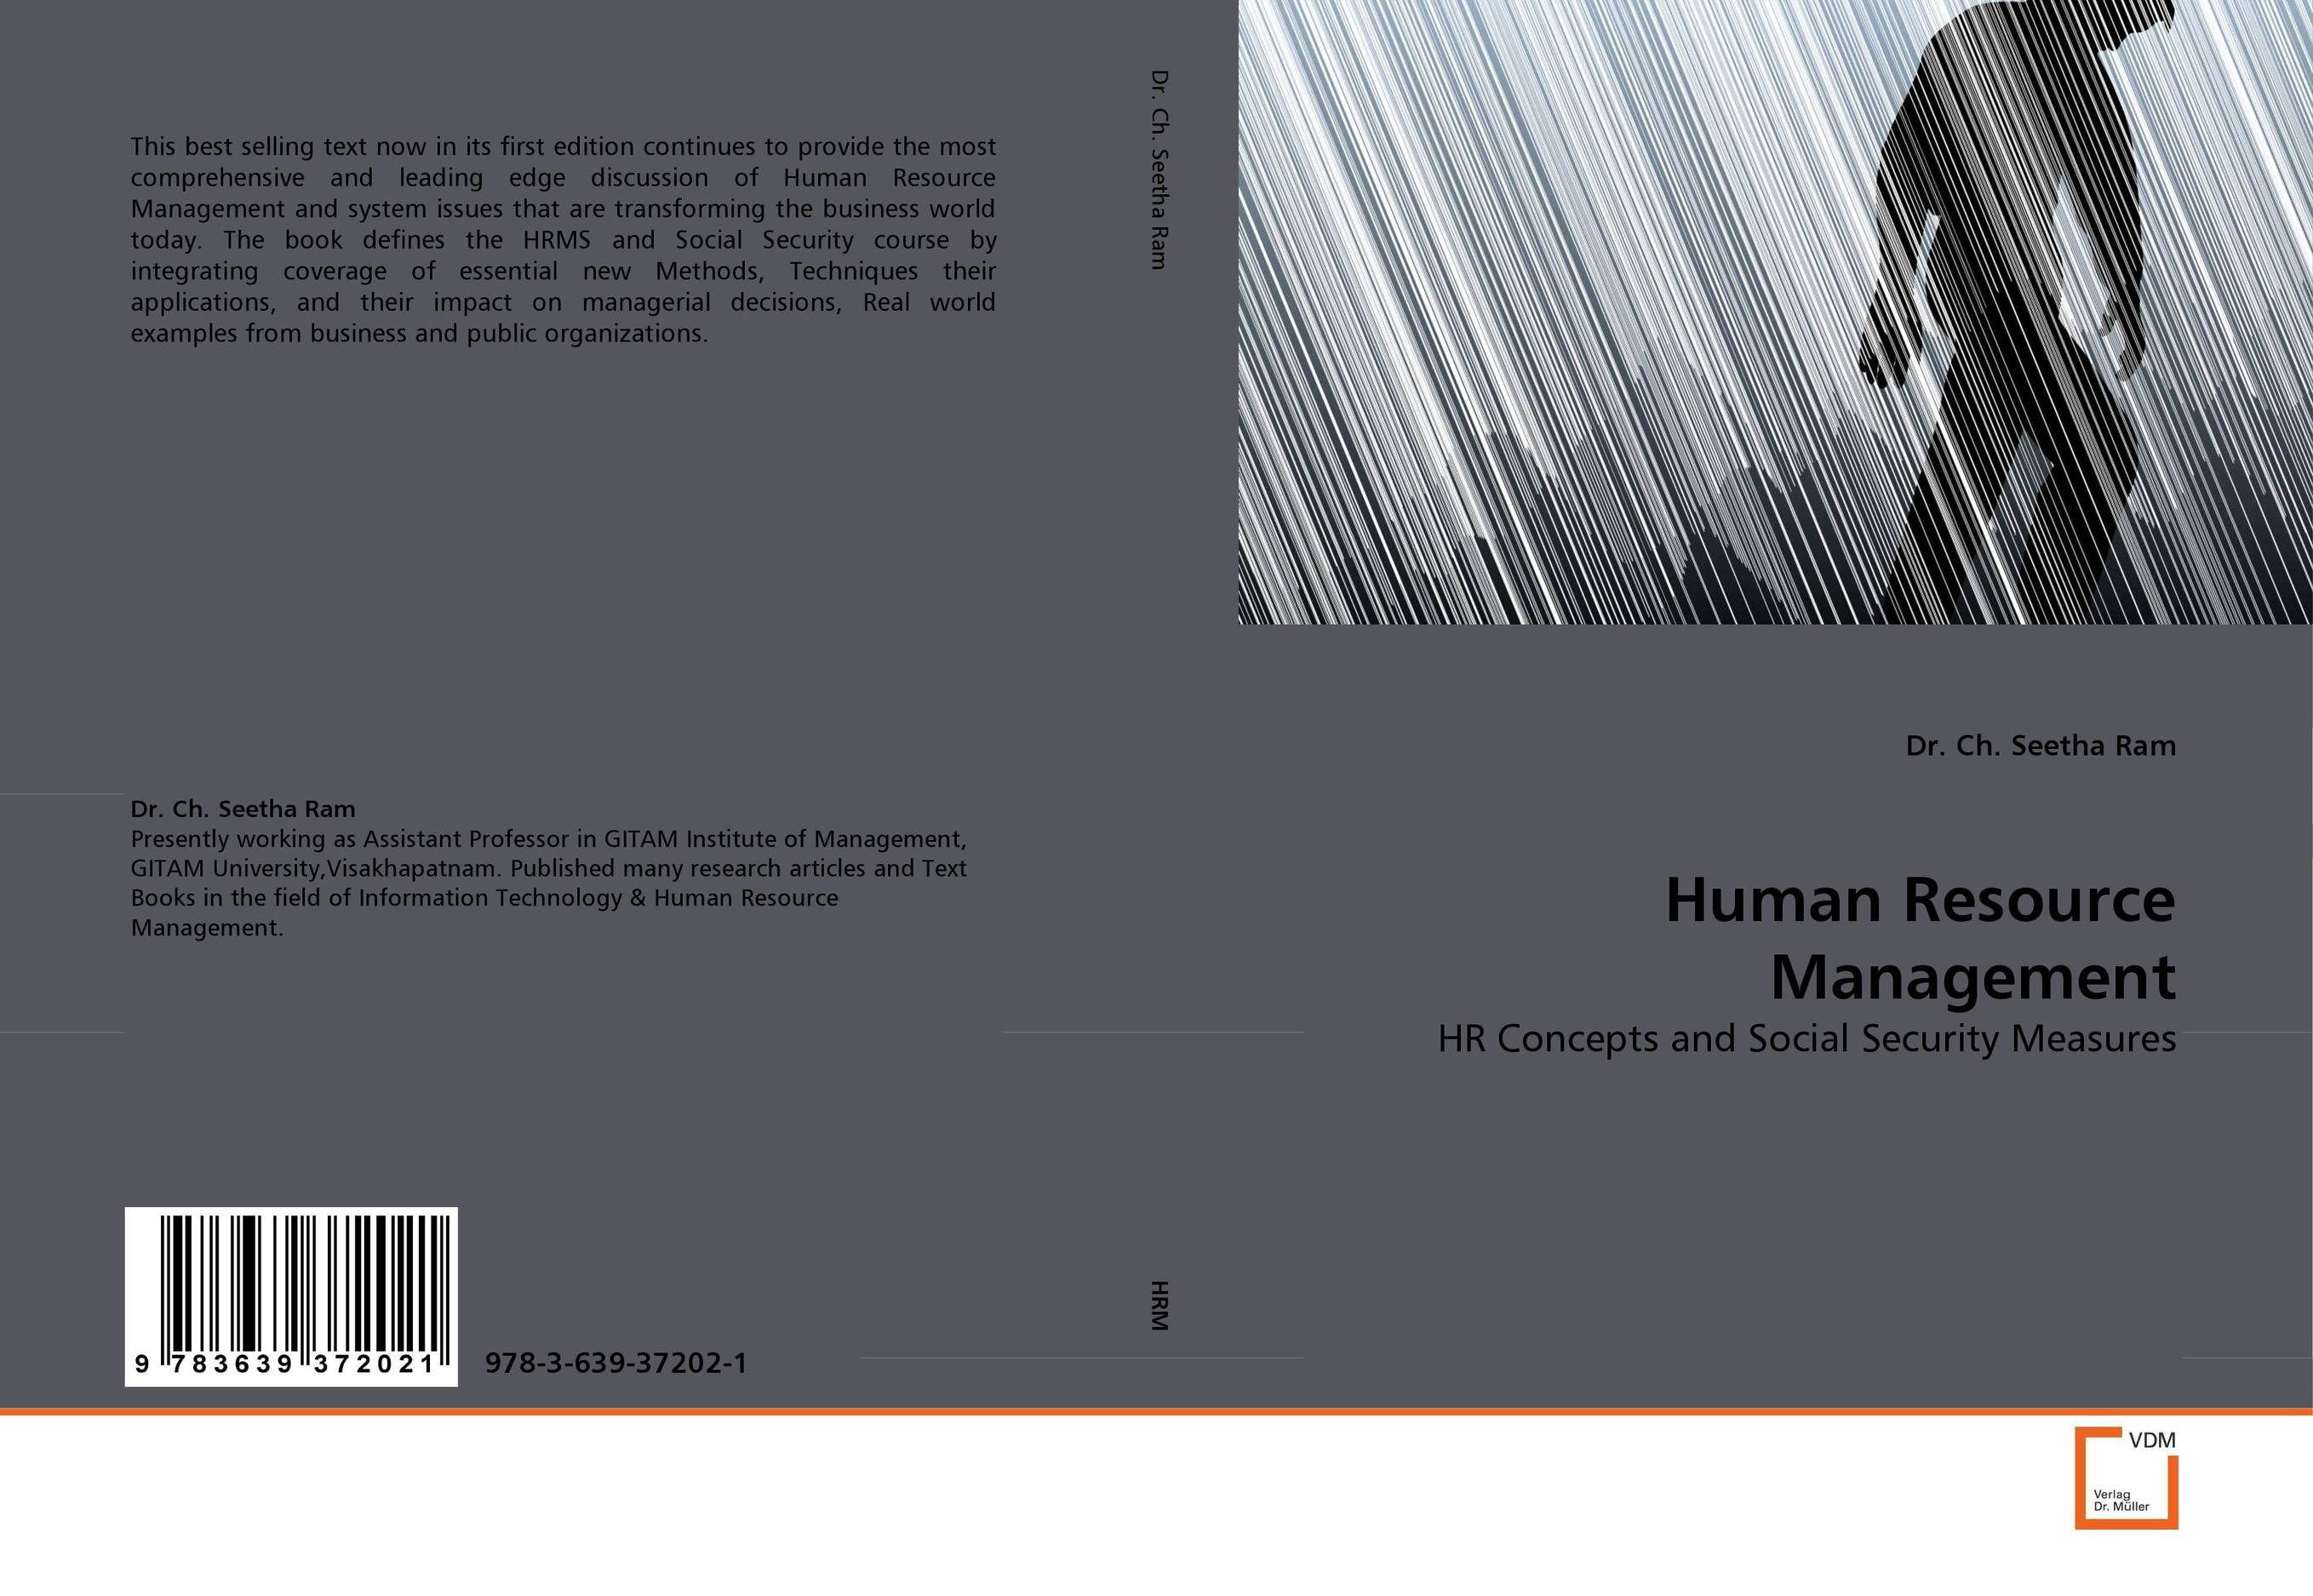 Human Resource Management business models and human resource management